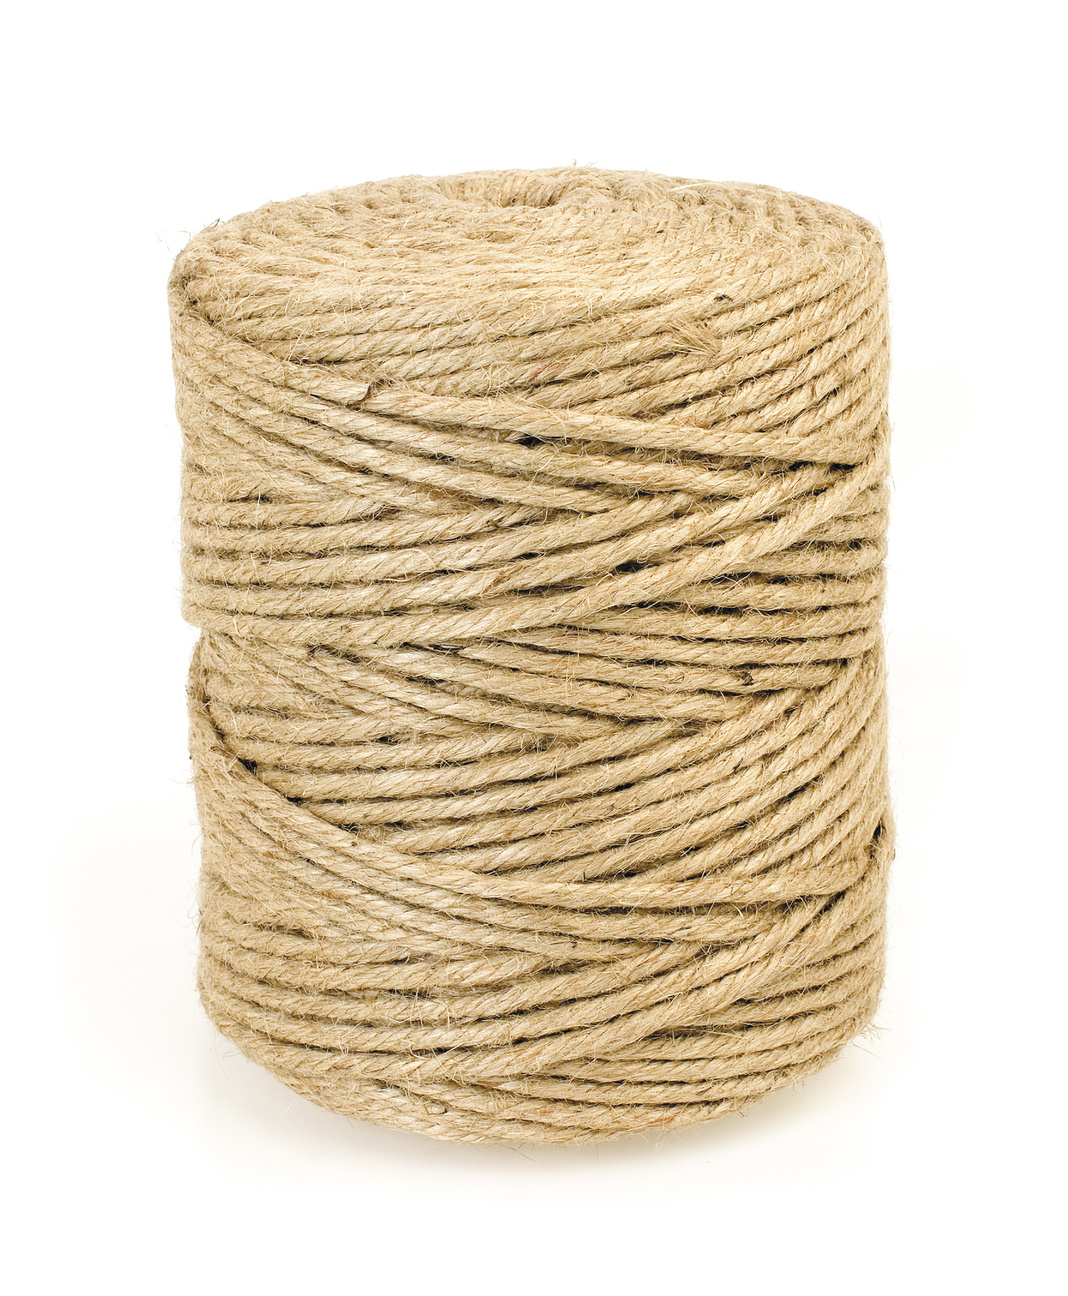 Five-Ply 100% Natural Jute, 6lbs. 72lb. Strength